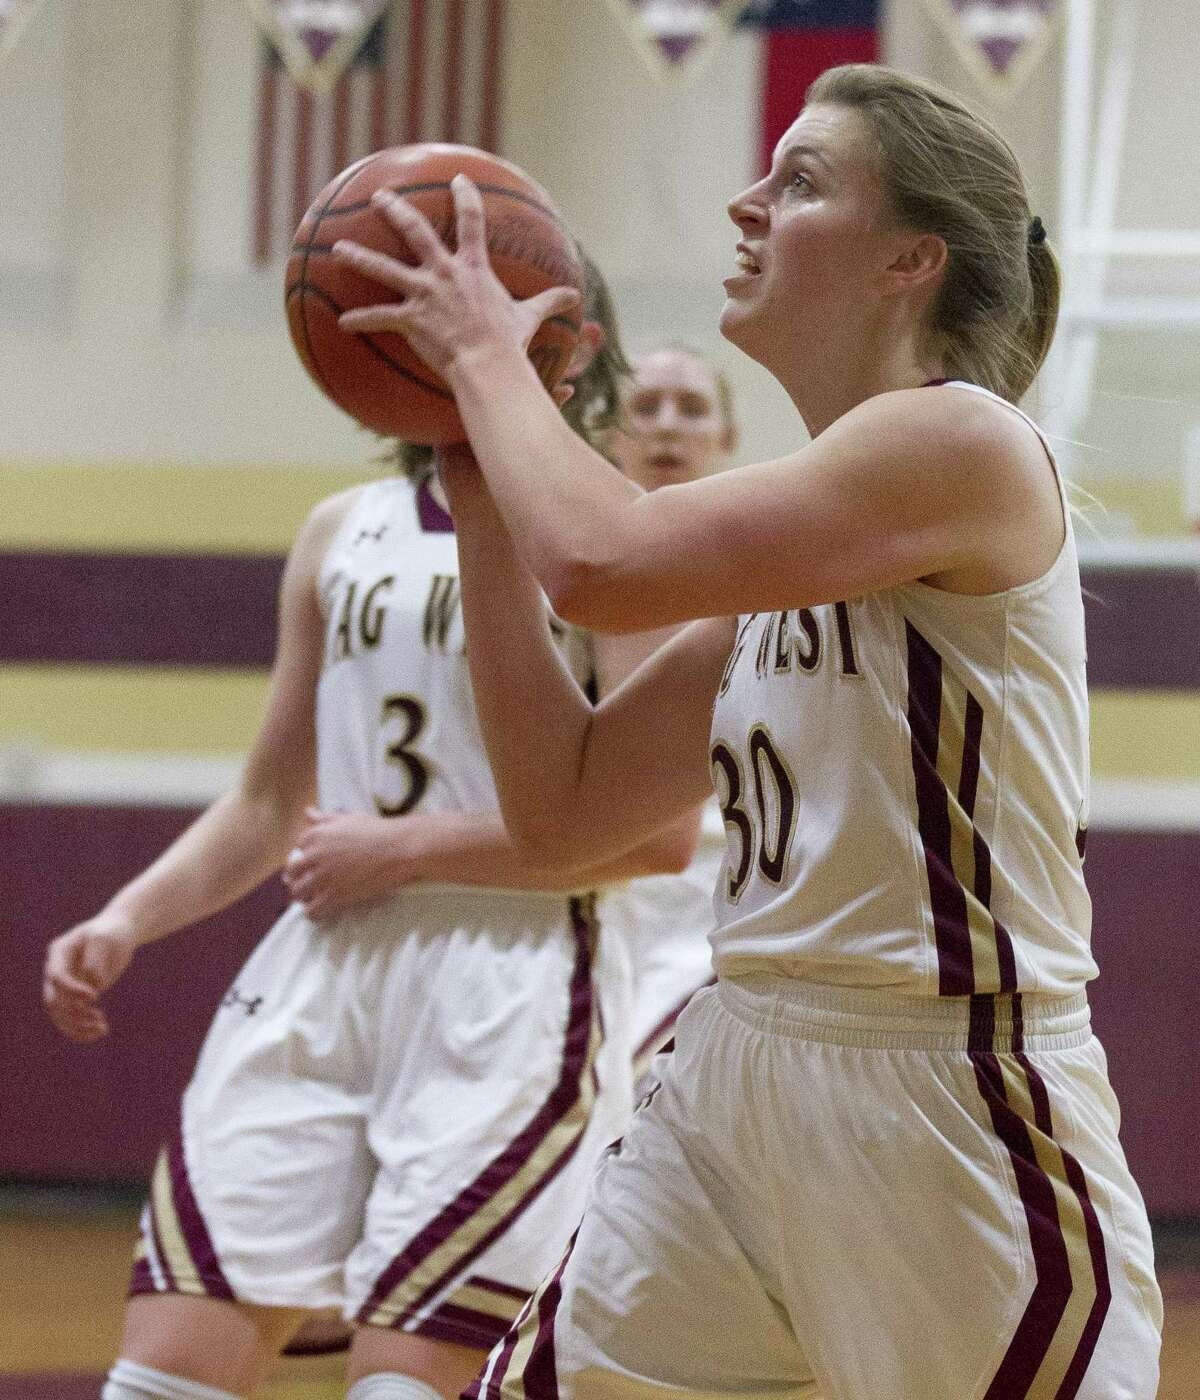 Magnolia West power forward Hannah Eggleston (30) looks to shoot during the first quarter of a District 19-5A high school basketball game at Magnolia West High School, Tuesday, Jan. 15, 2019, in Magnolia.